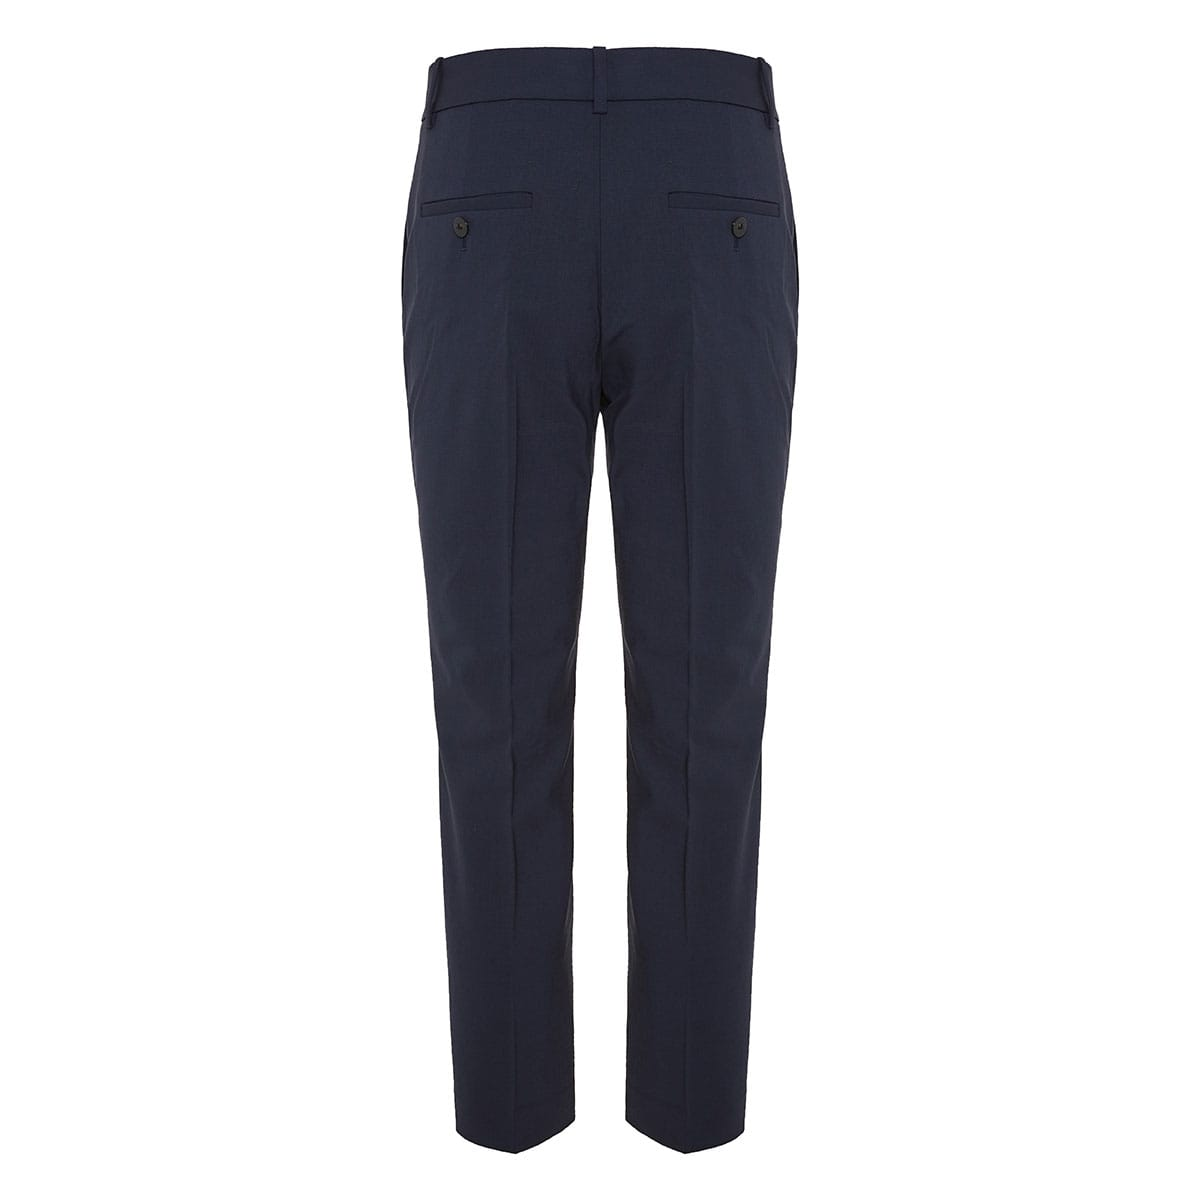 Treeca cropped tailored trousers